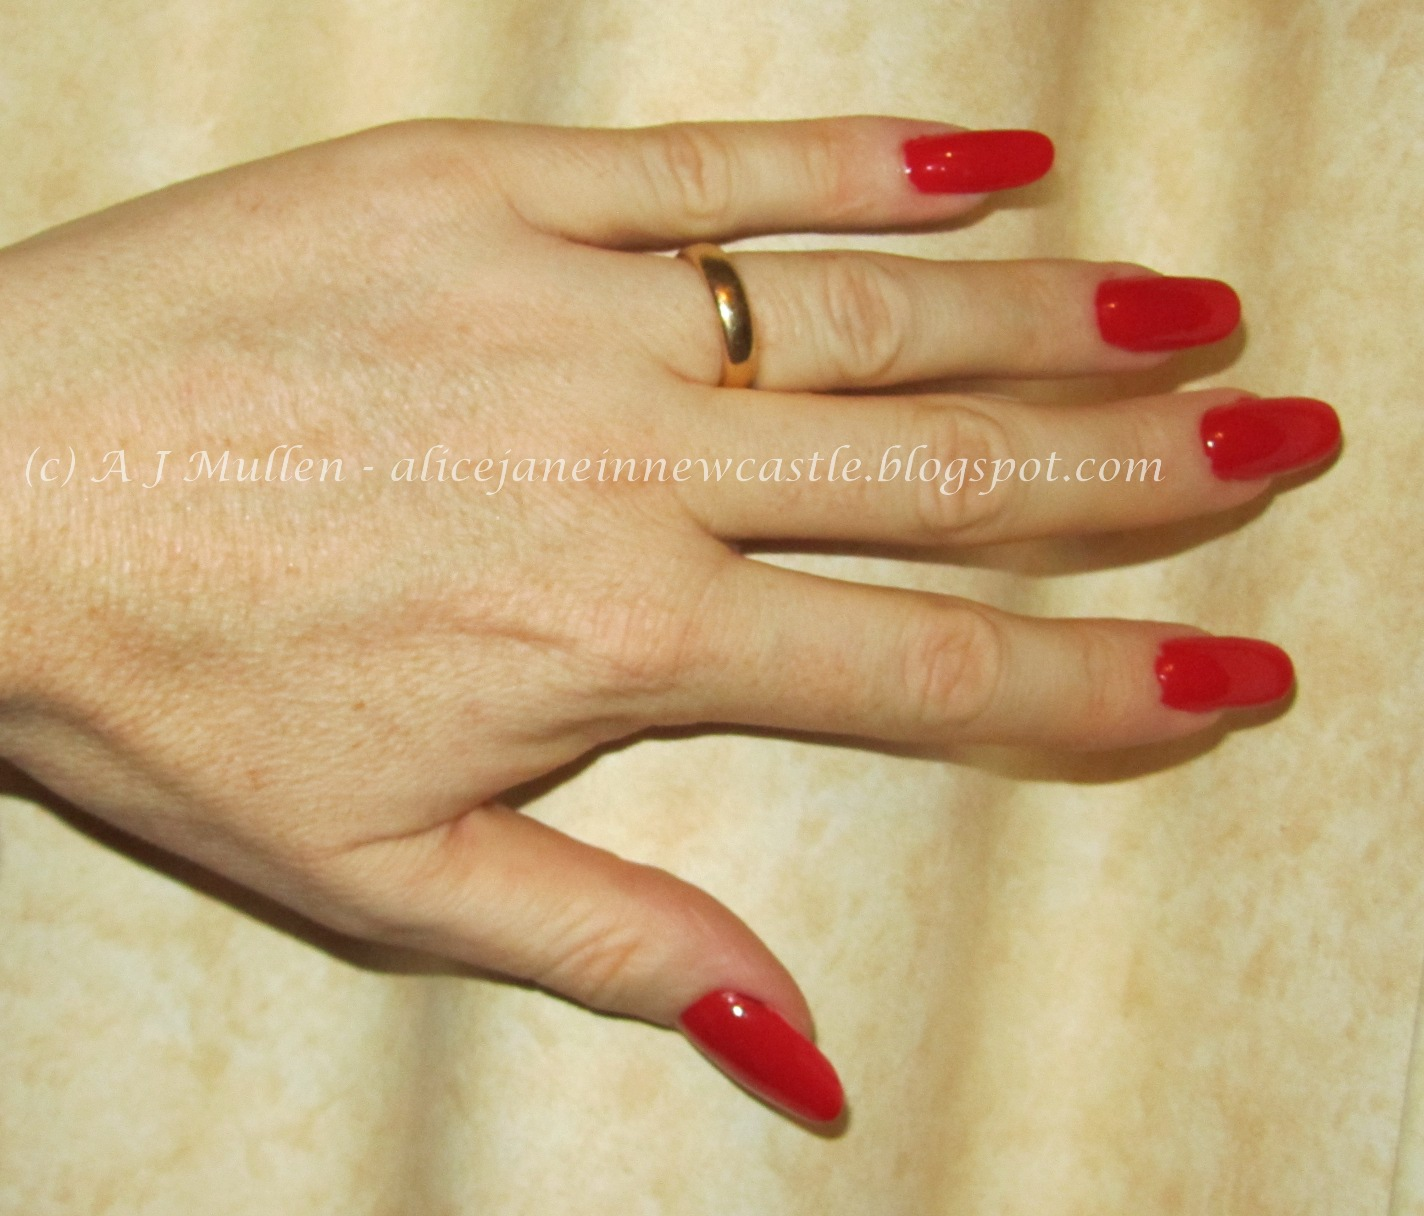 Alice Jane in Newcastle: Bright red nails at work - revisited